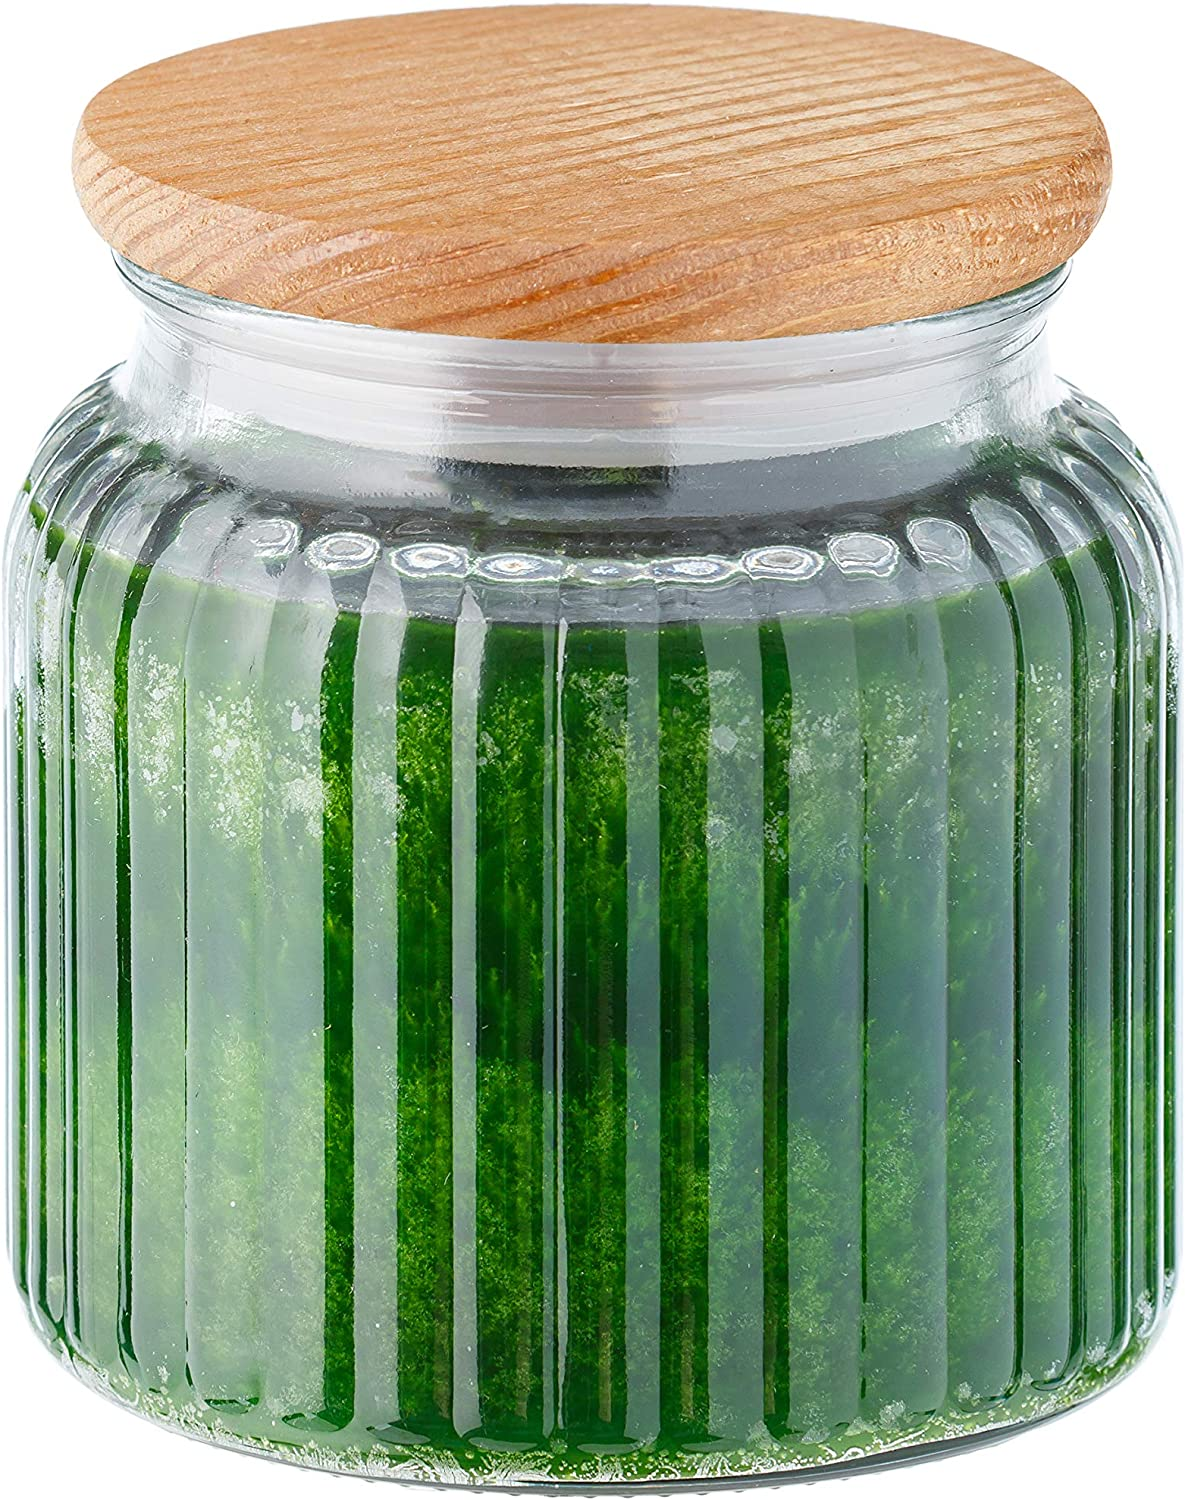 Fresh Lemon Citrus Leaf Olive Blossom Scented Jar Candle | Large 18 Ounce, 120 Hour Burn Time, Double Wick |Home Décor, Glass Jar with Wood Lid | Made in USA